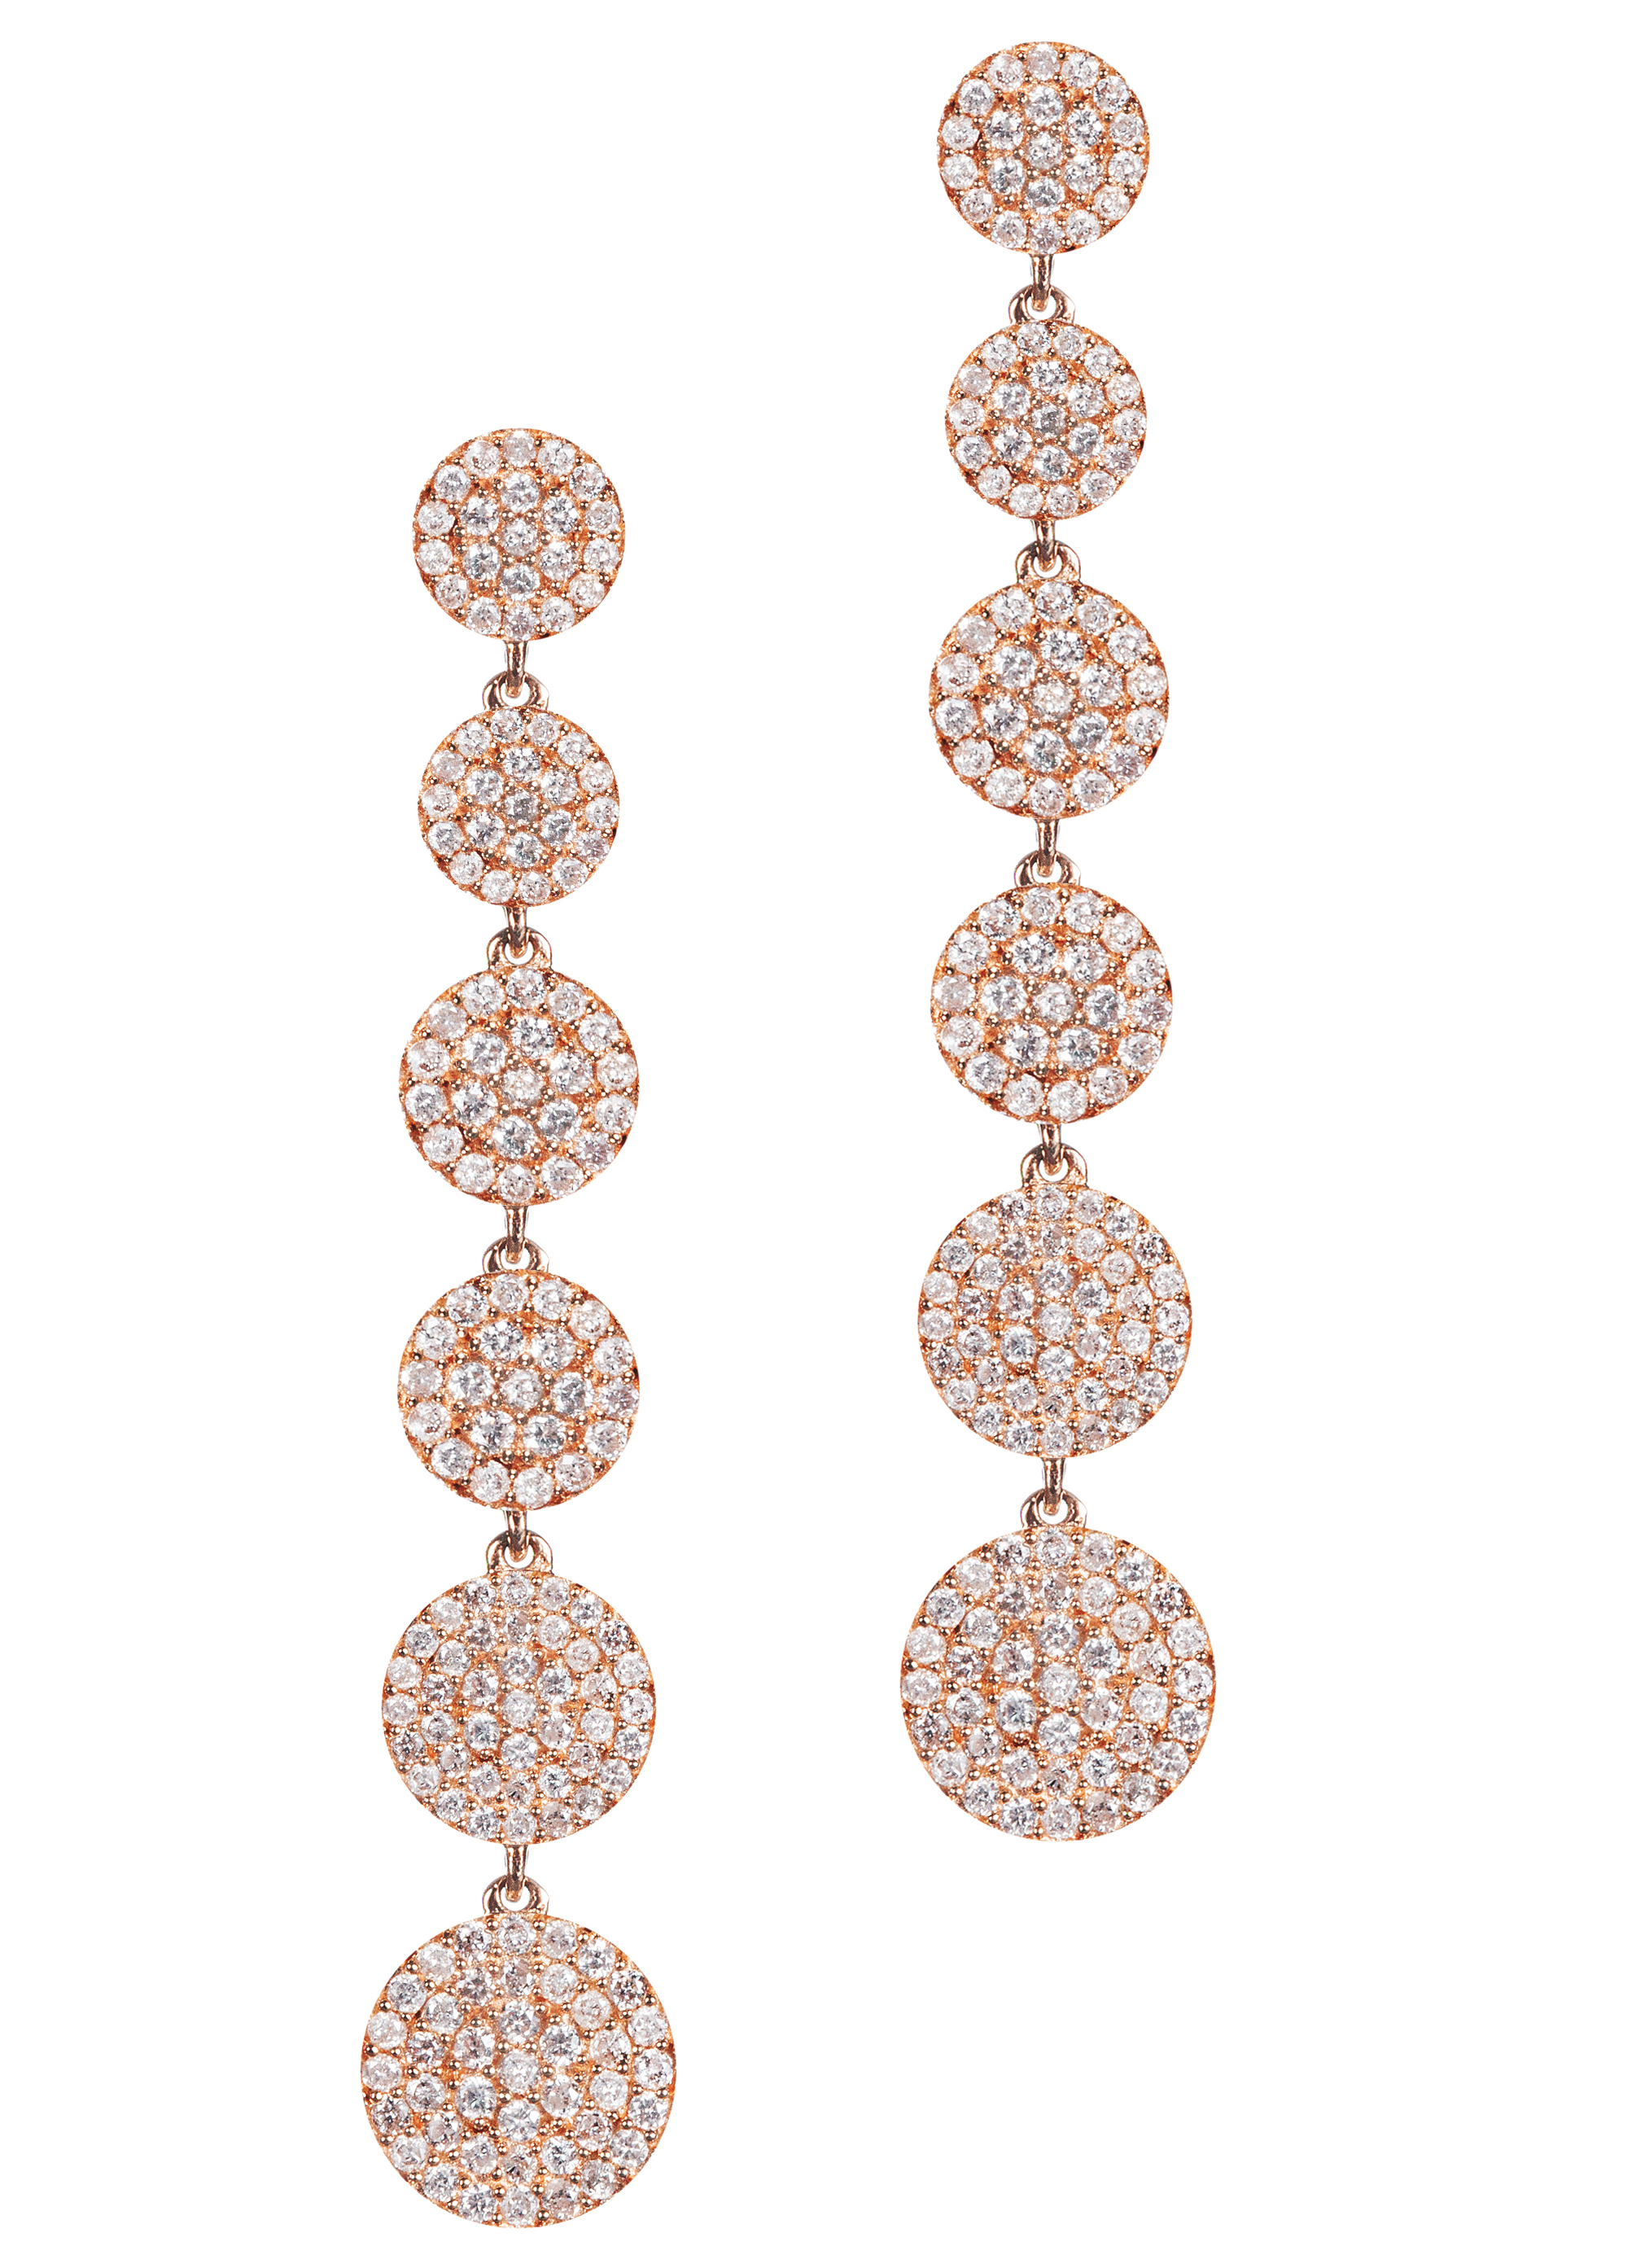 Graziela Gems Diamond Cascade earrings | JCK On Your Market